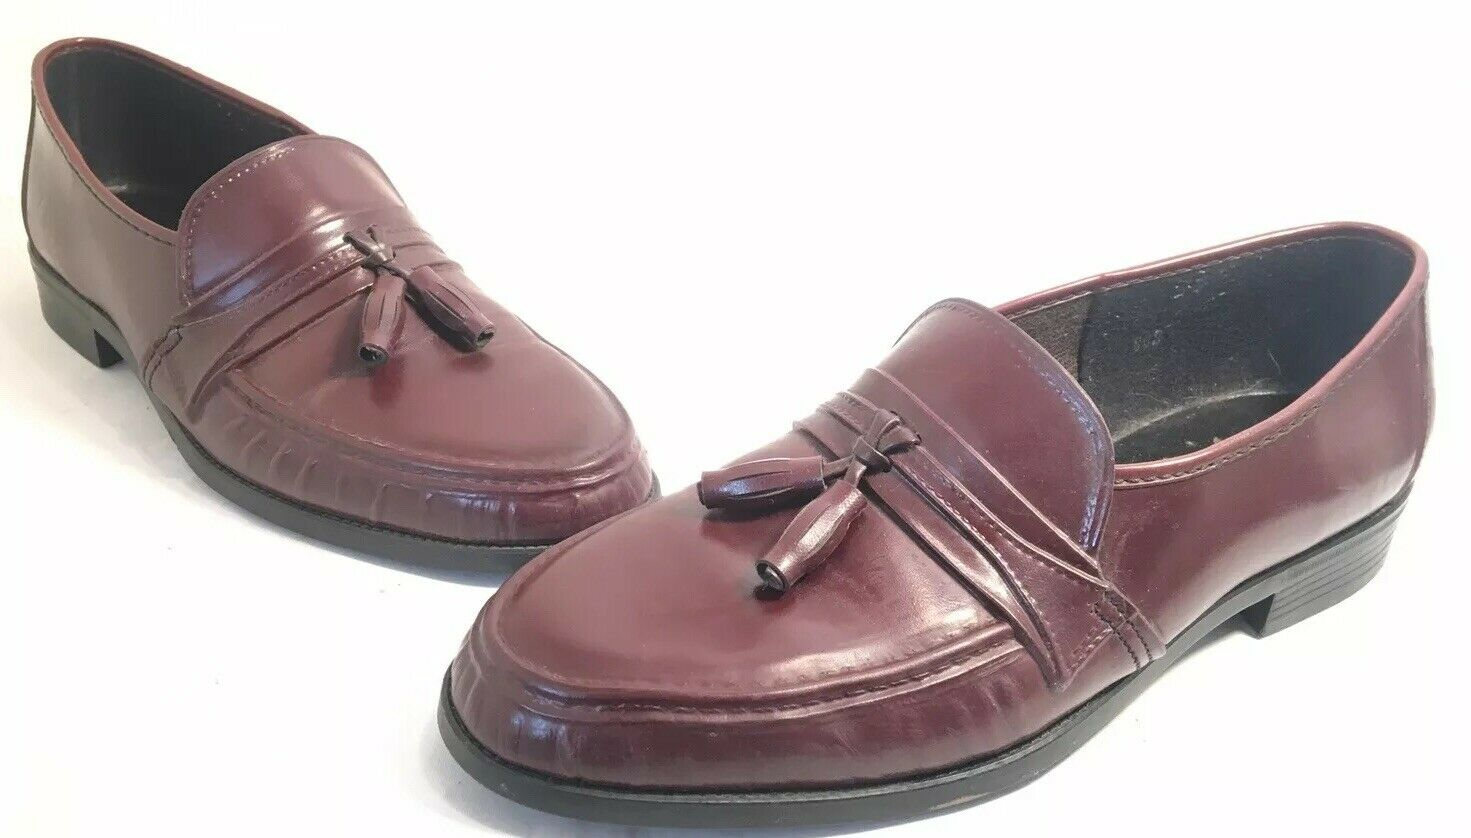 Vintage 70's 70's 70's 80s USA Made CHARTERHOUSE braun Loafers Canvas Rubber Lo Top 8.5 dcd148